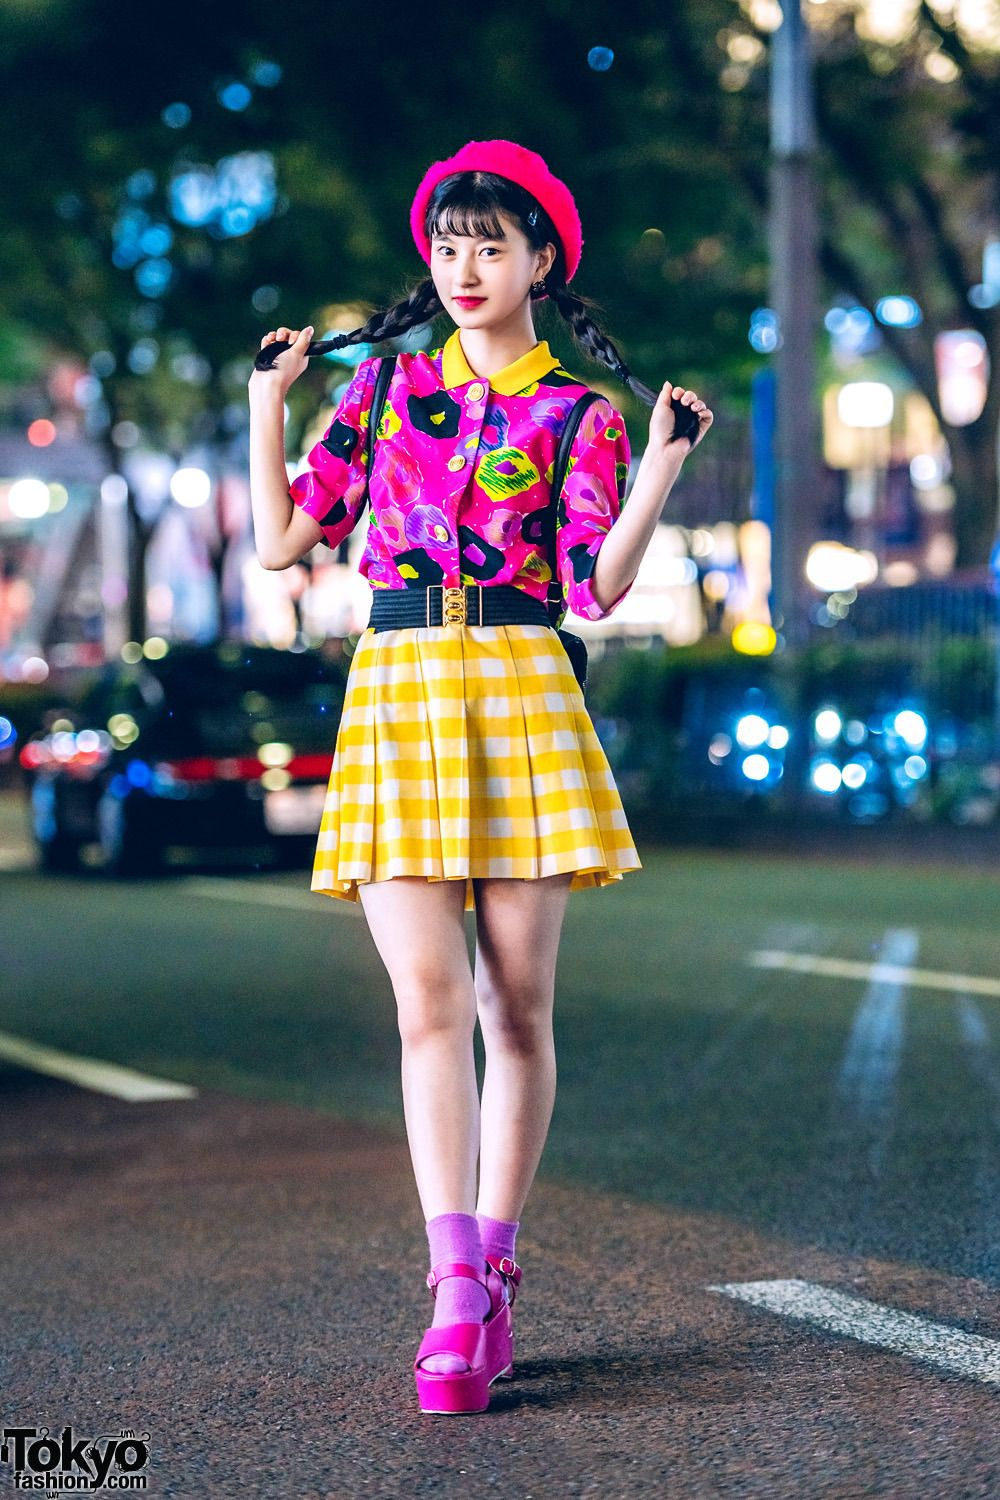 4fab527f0 14-year-old Japanese model and aspiring actress A-pon on the street in  Harajuku wearing a cheerful look that features a vintage print top with a  vintage ...